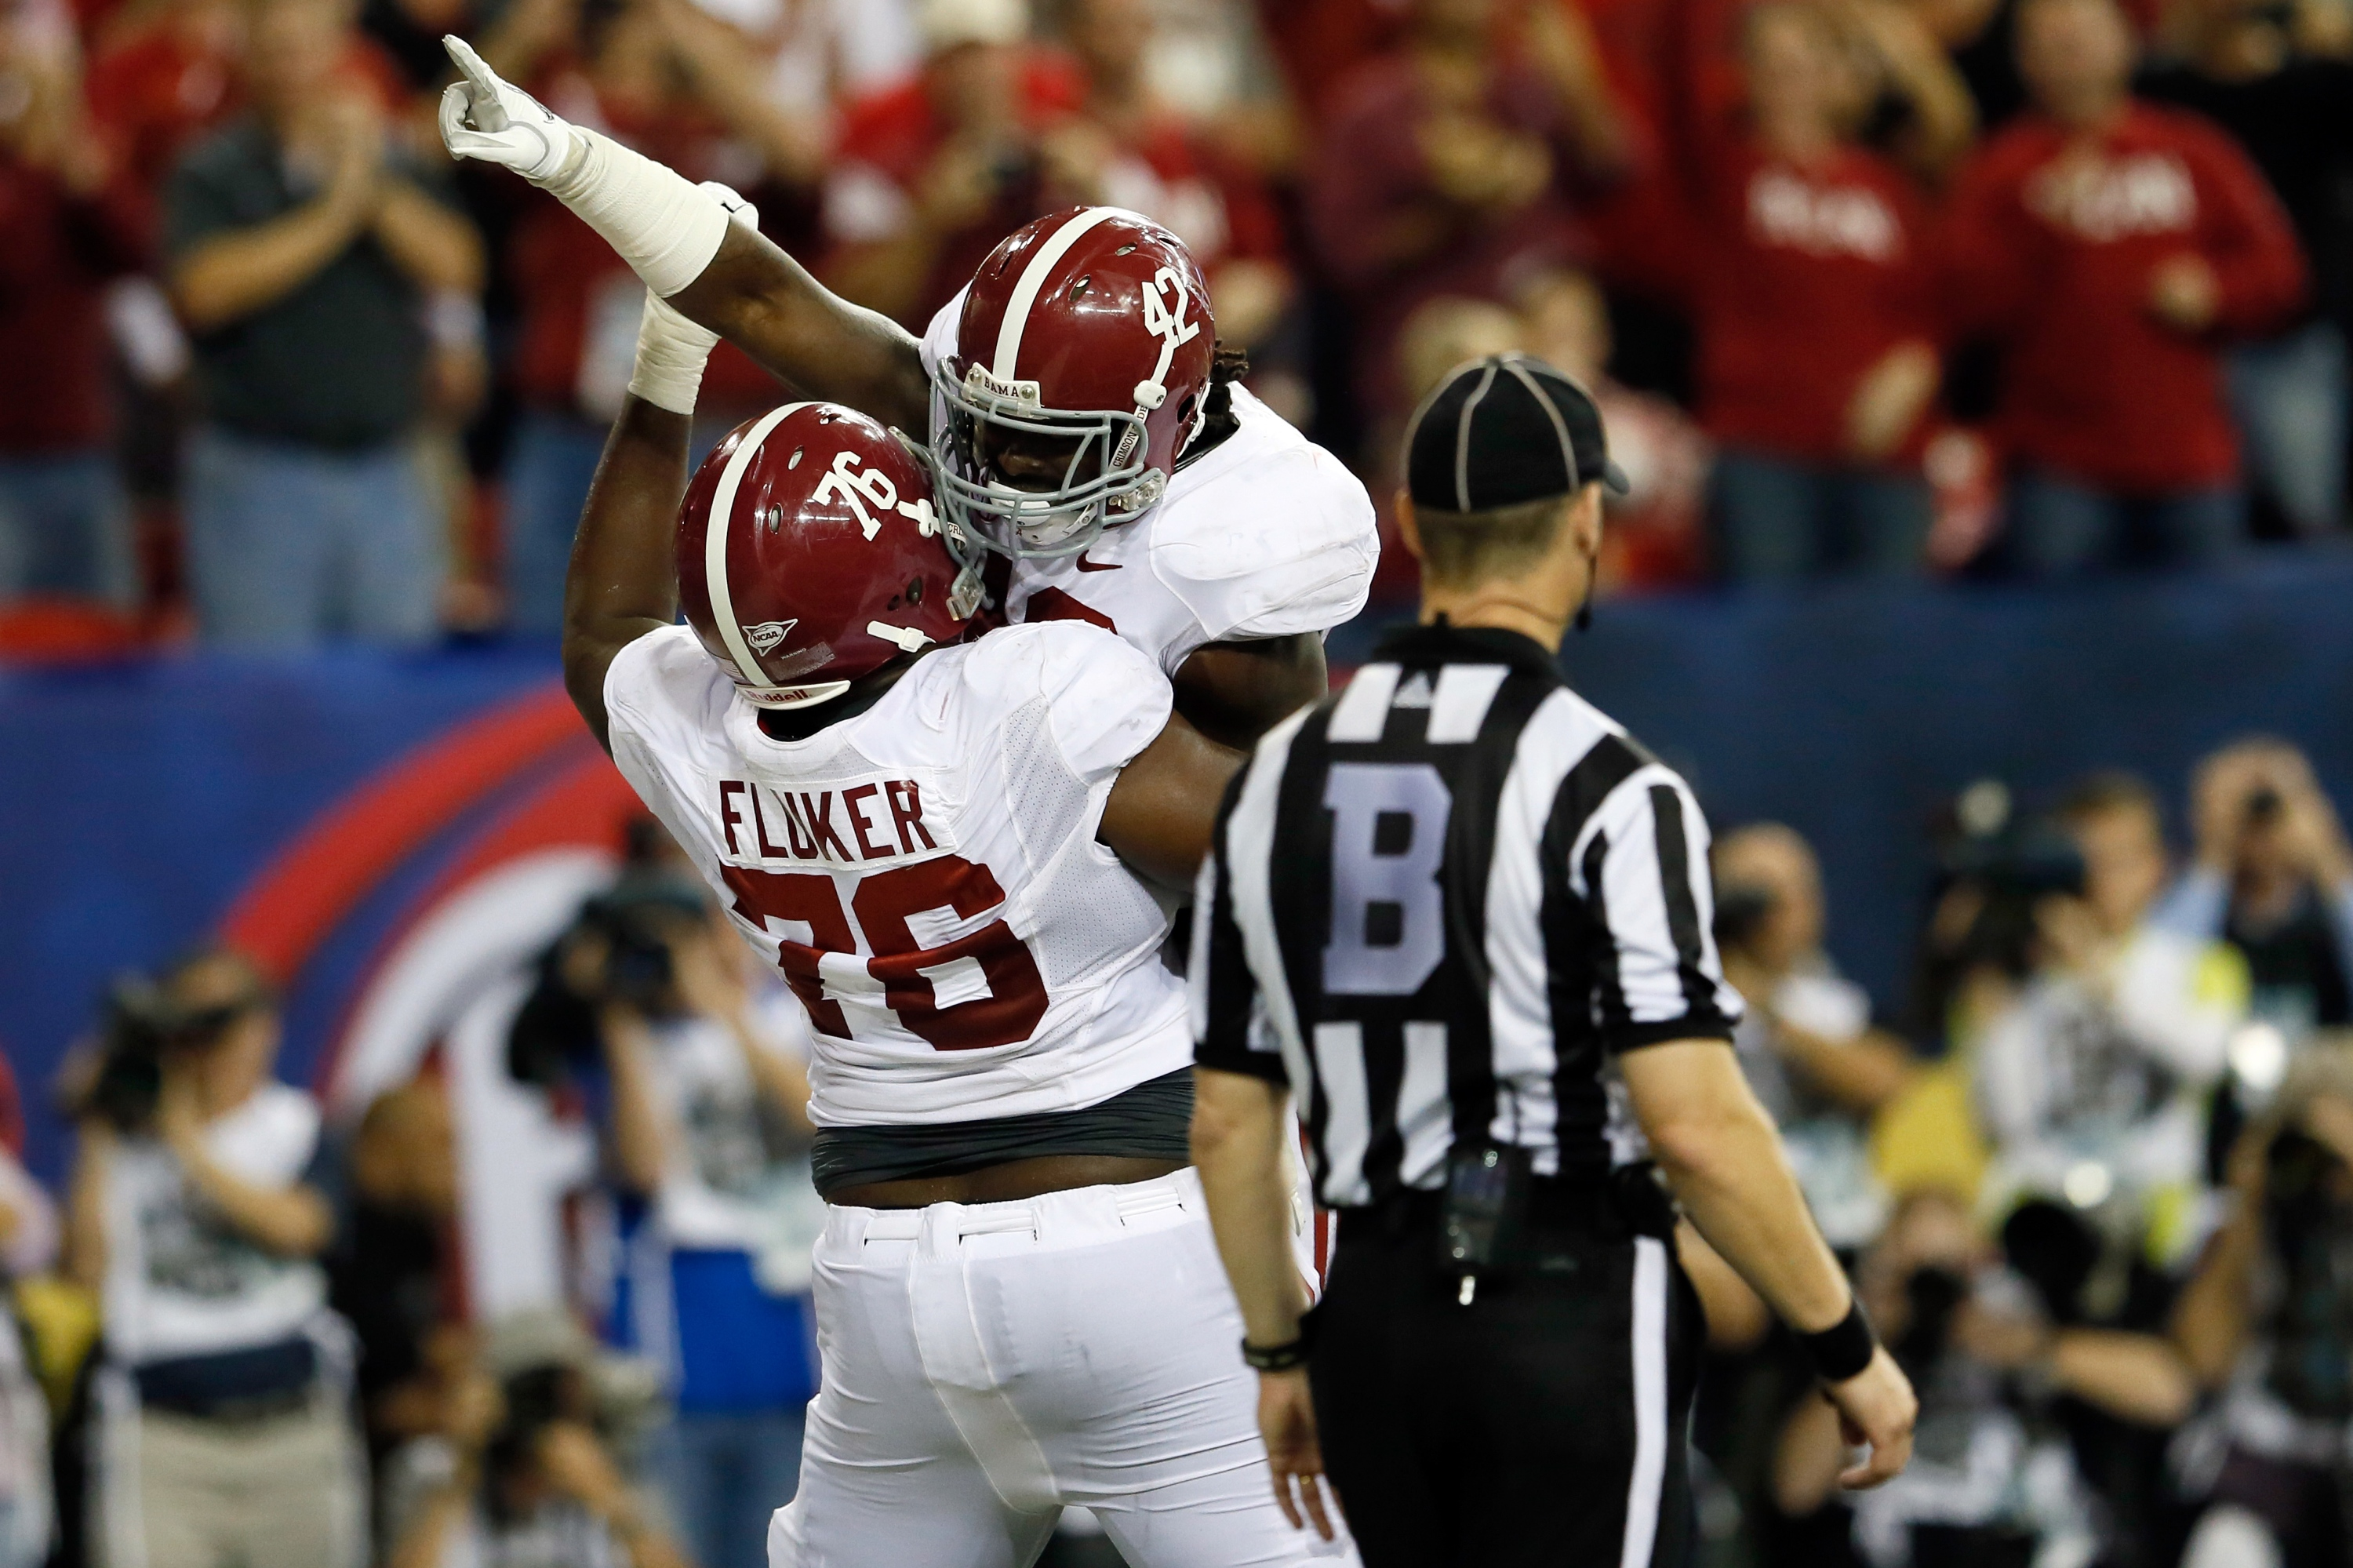 D.J. Fluker hoists up Eddie Lacy after he scored a TD in the BCS title game. (Getty)